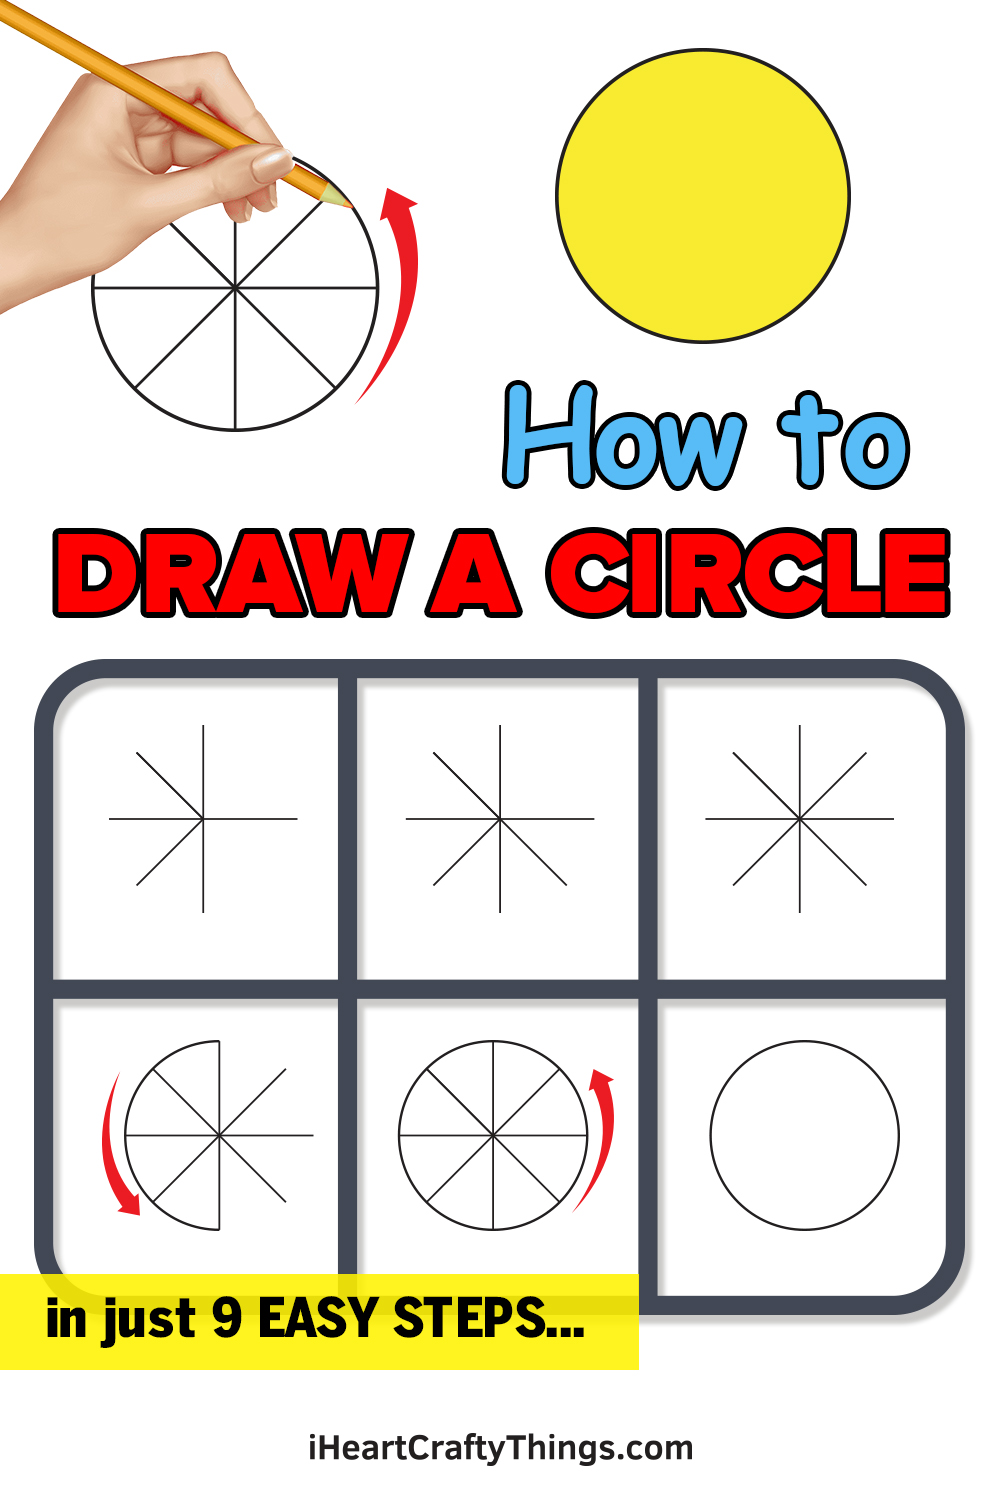 how to draw a circle in 9 easy steps